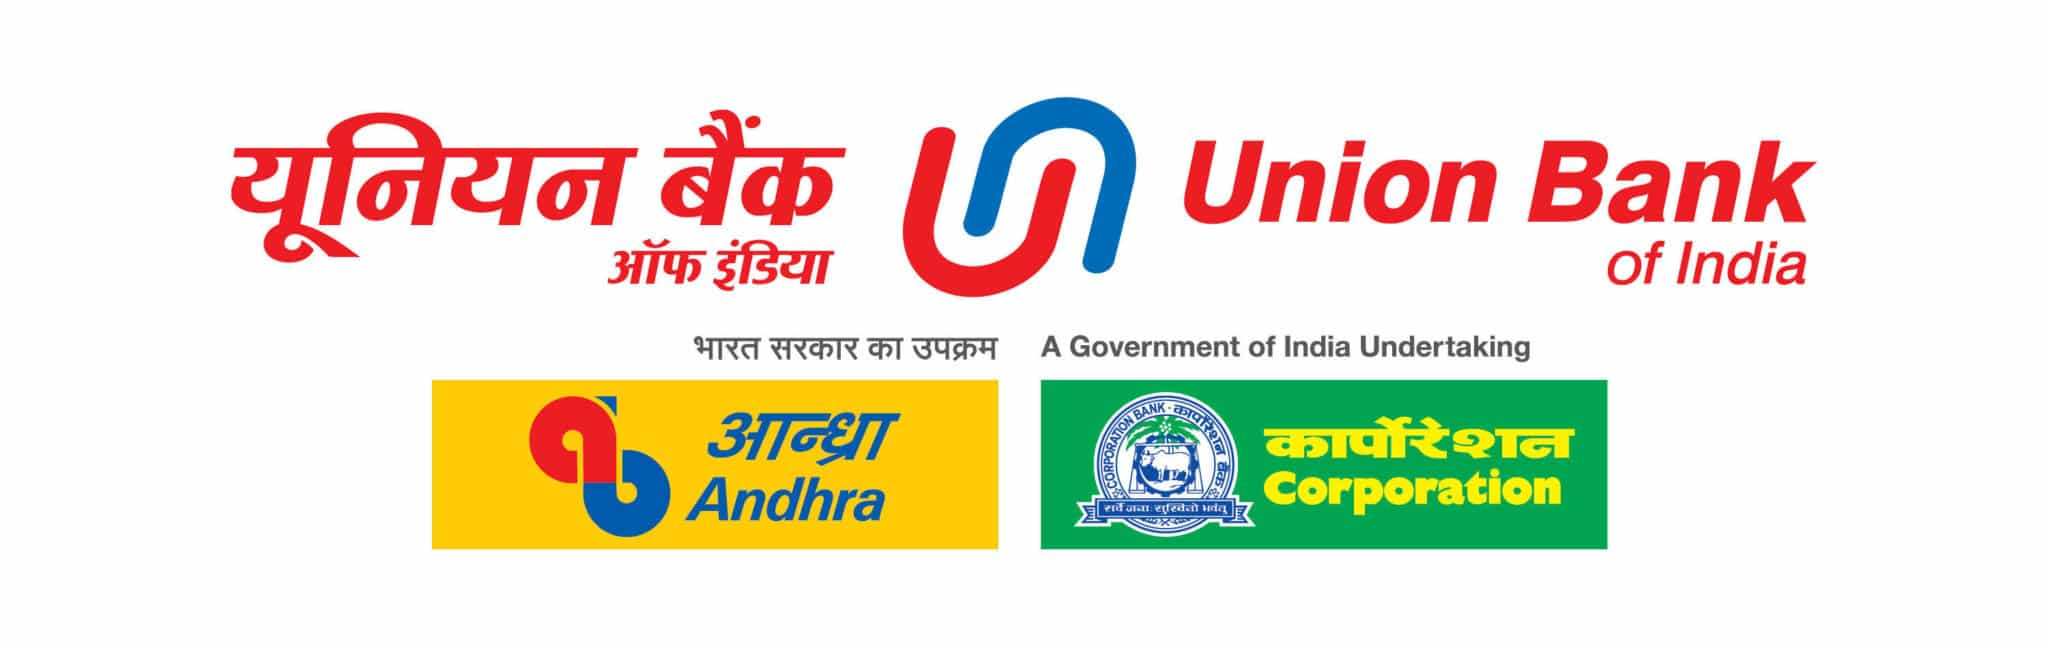 Union Bank Of India | List of Commercial Banks In India